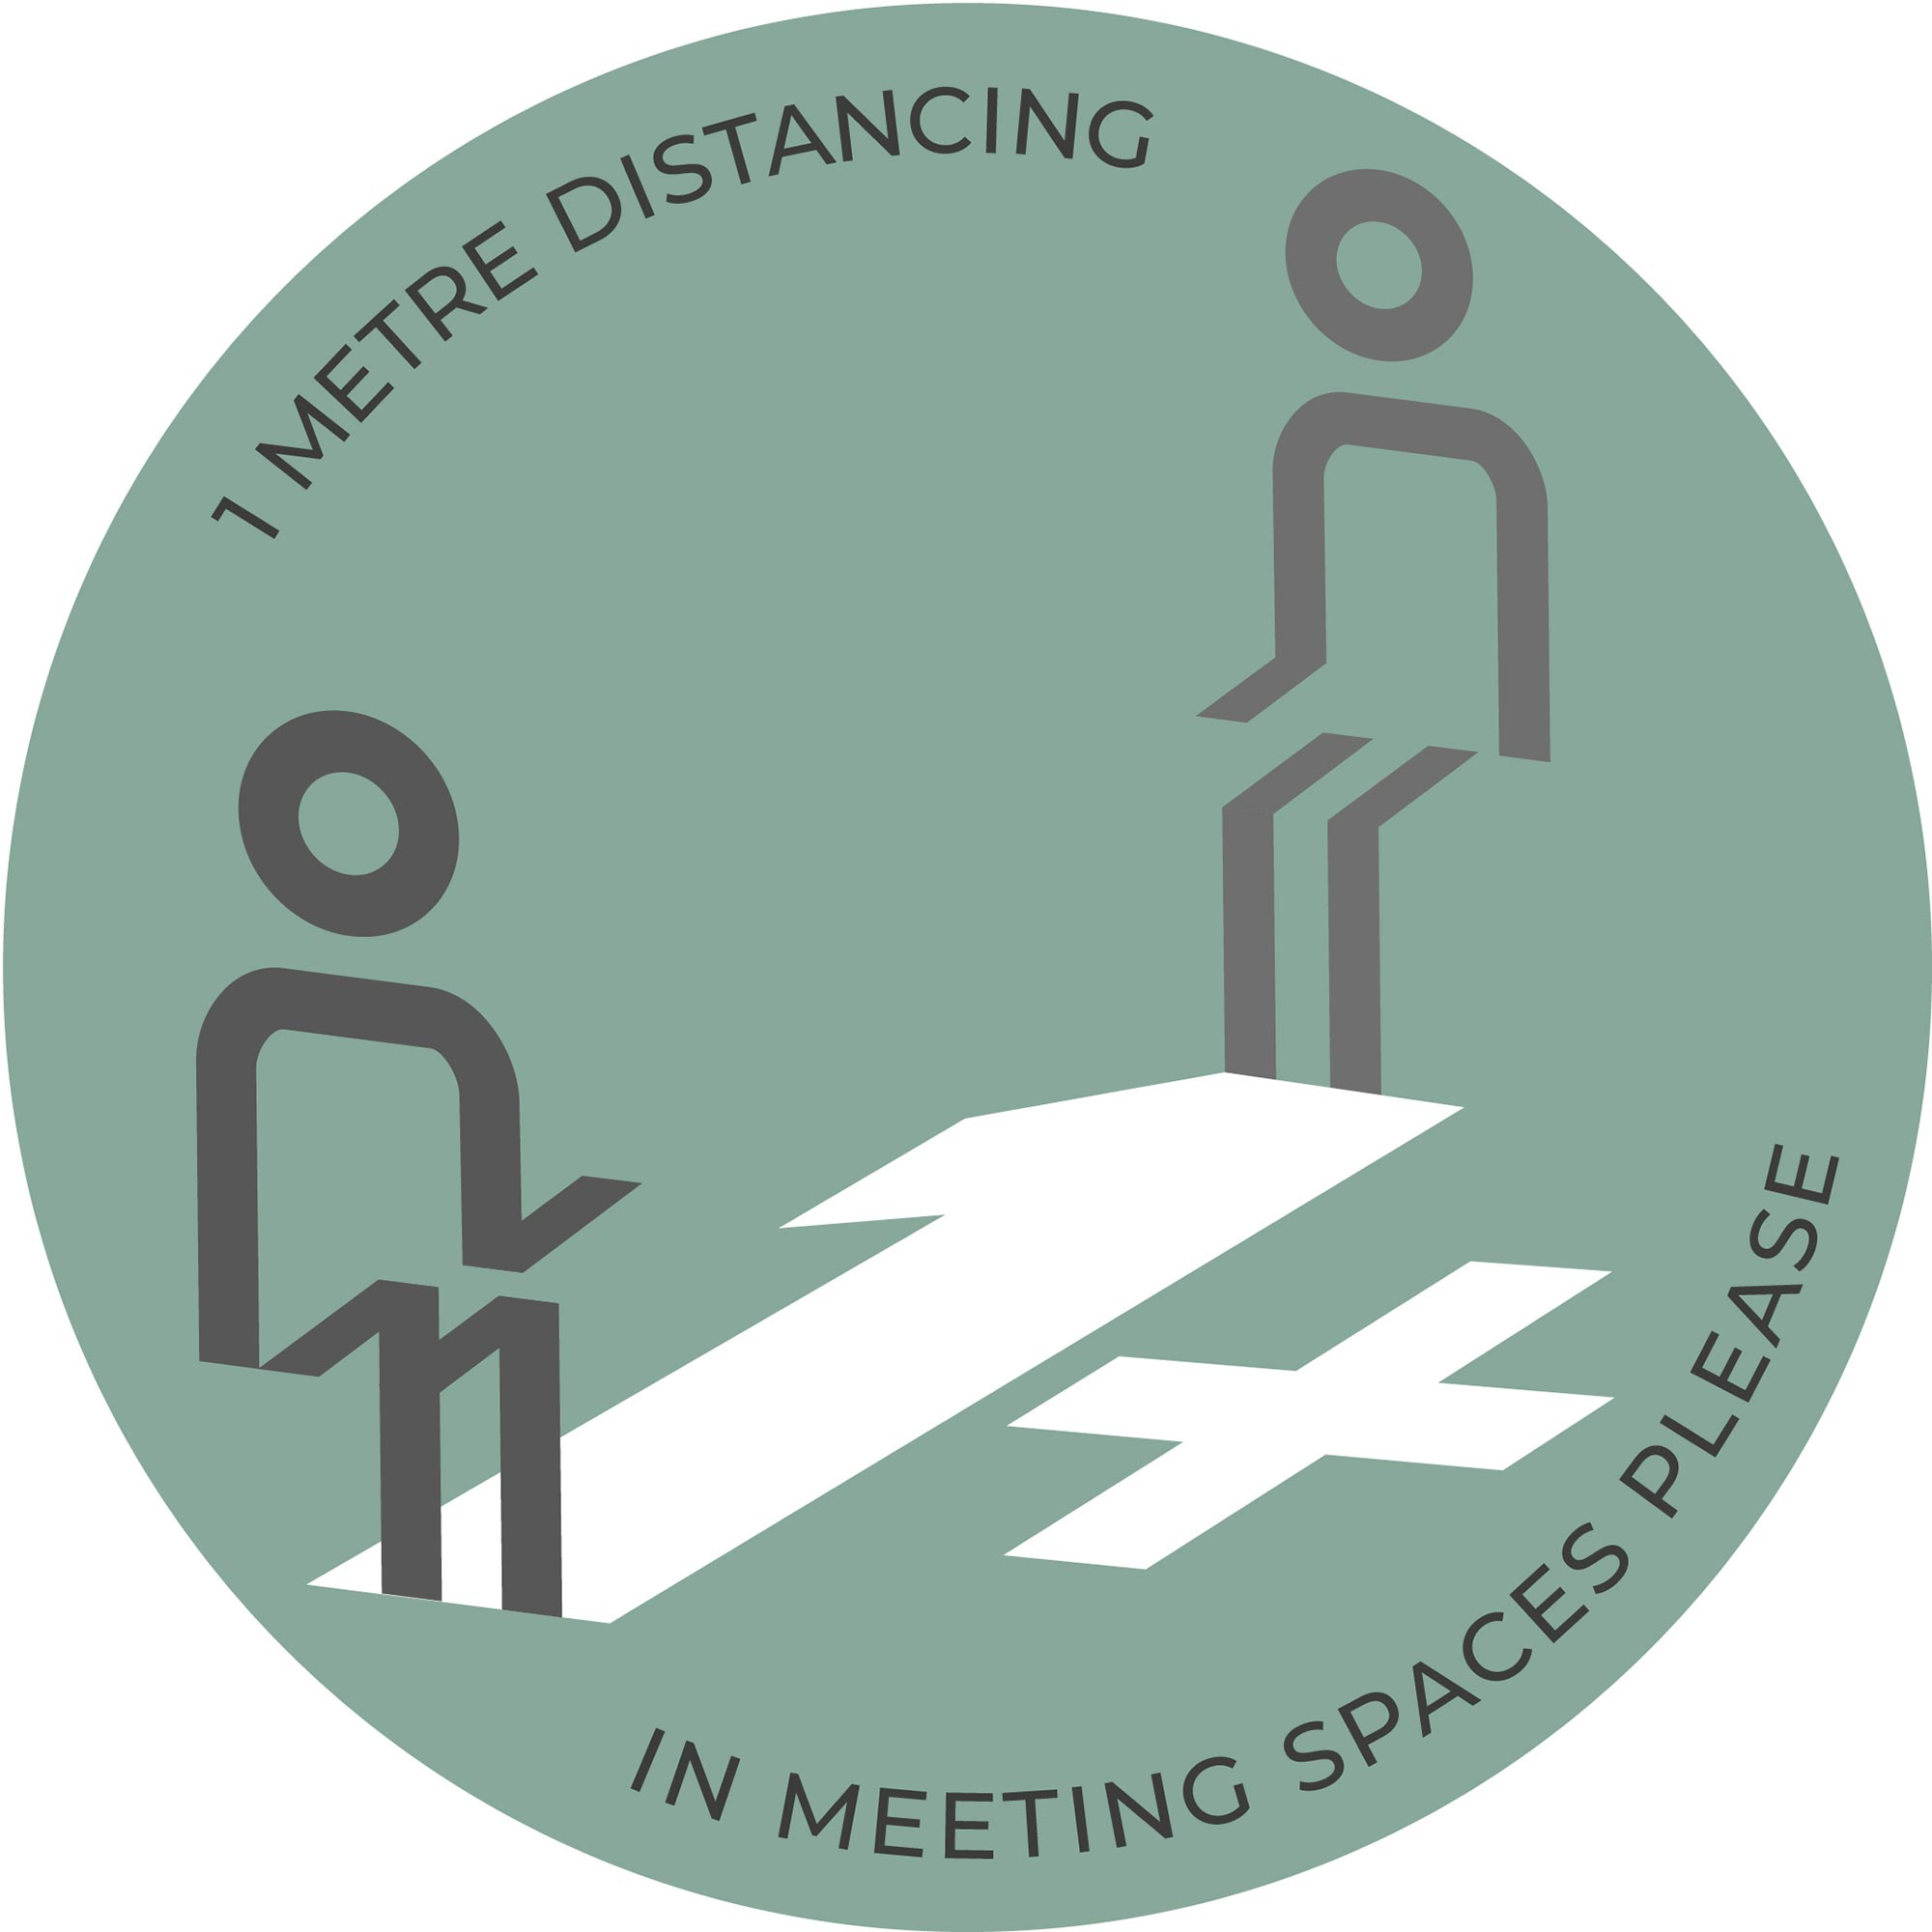 1m Meeting Spaces Distancing - Teal sticker